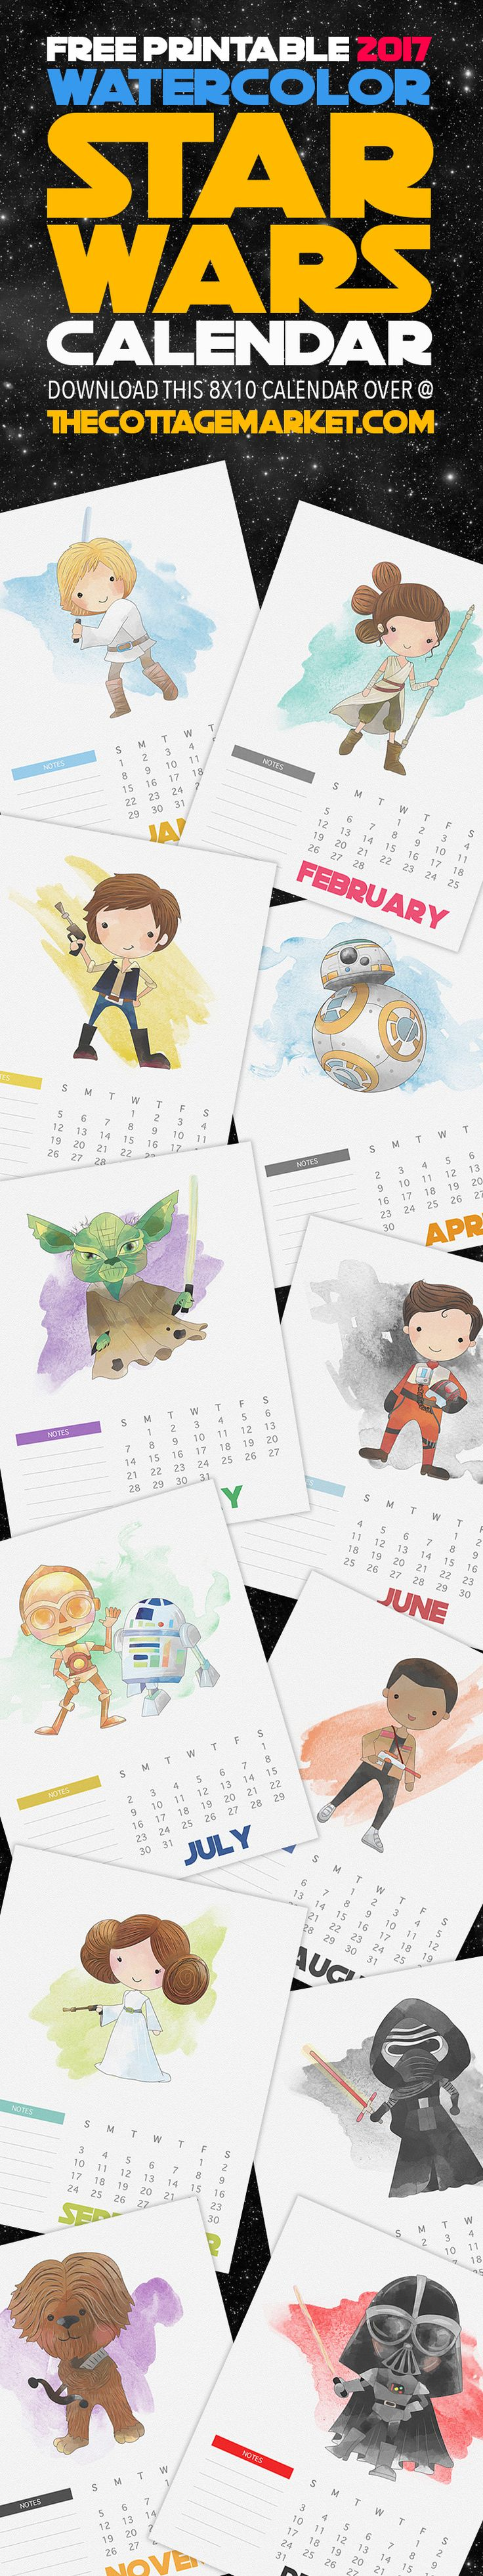 Free printable 2017 watercolor Star Wars calendar